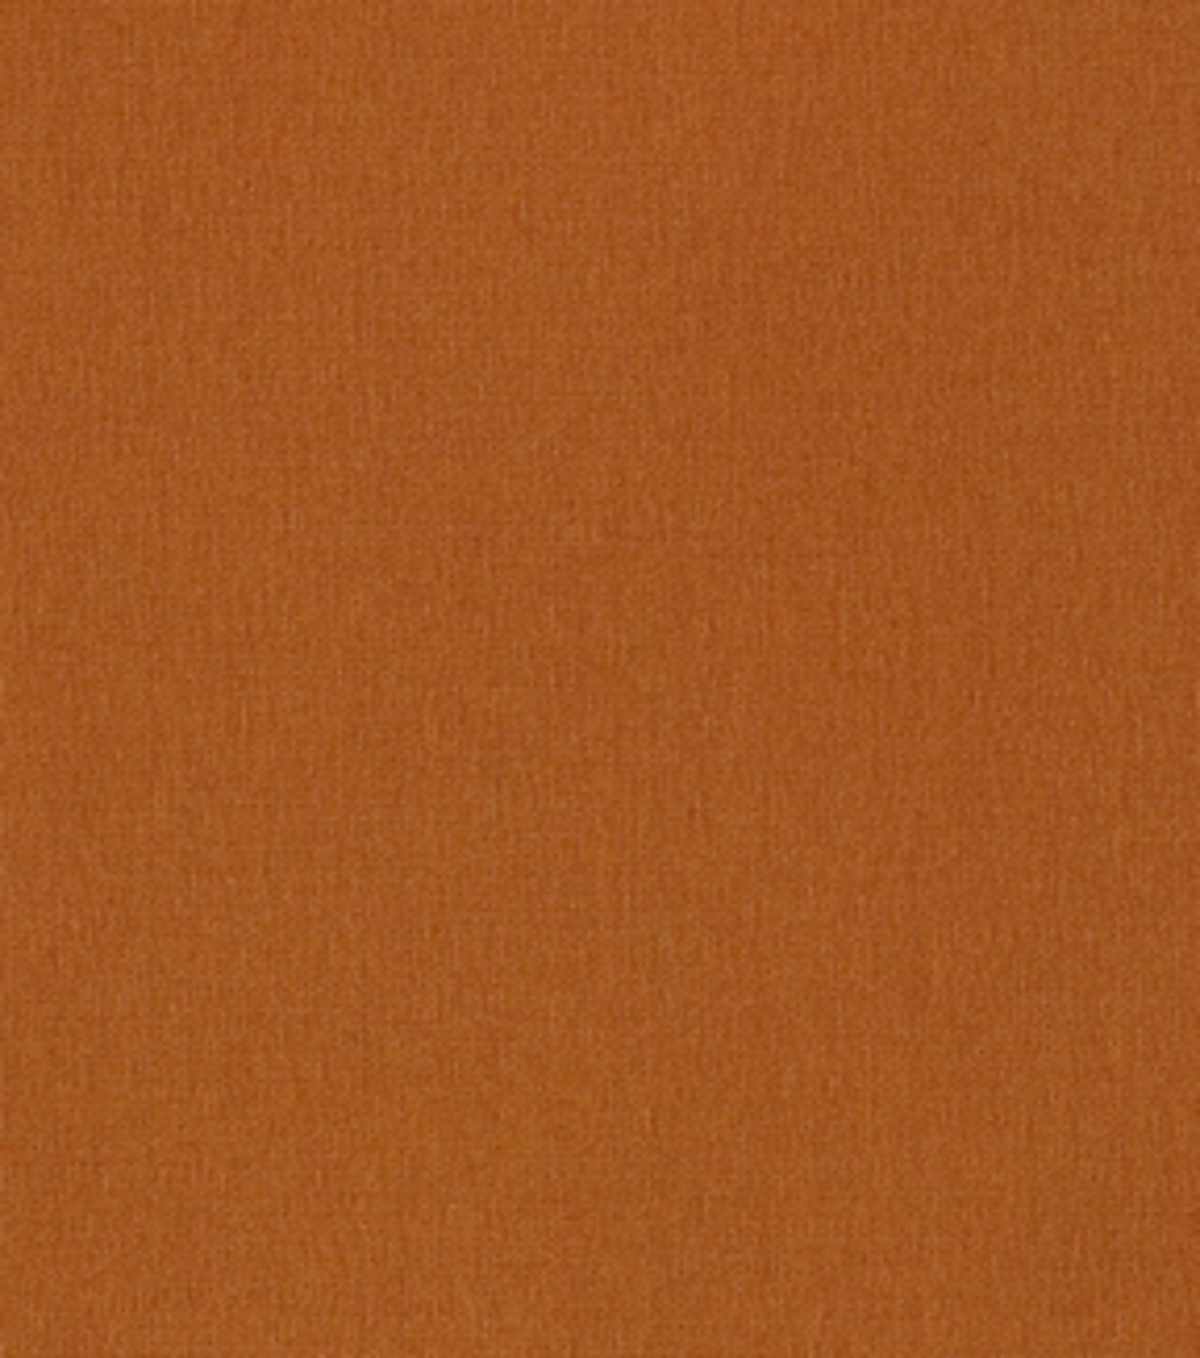 Home Decor 8\u0022x8\u0022 Fabric Swatch-Signature Series Ultra Taffeta Spice